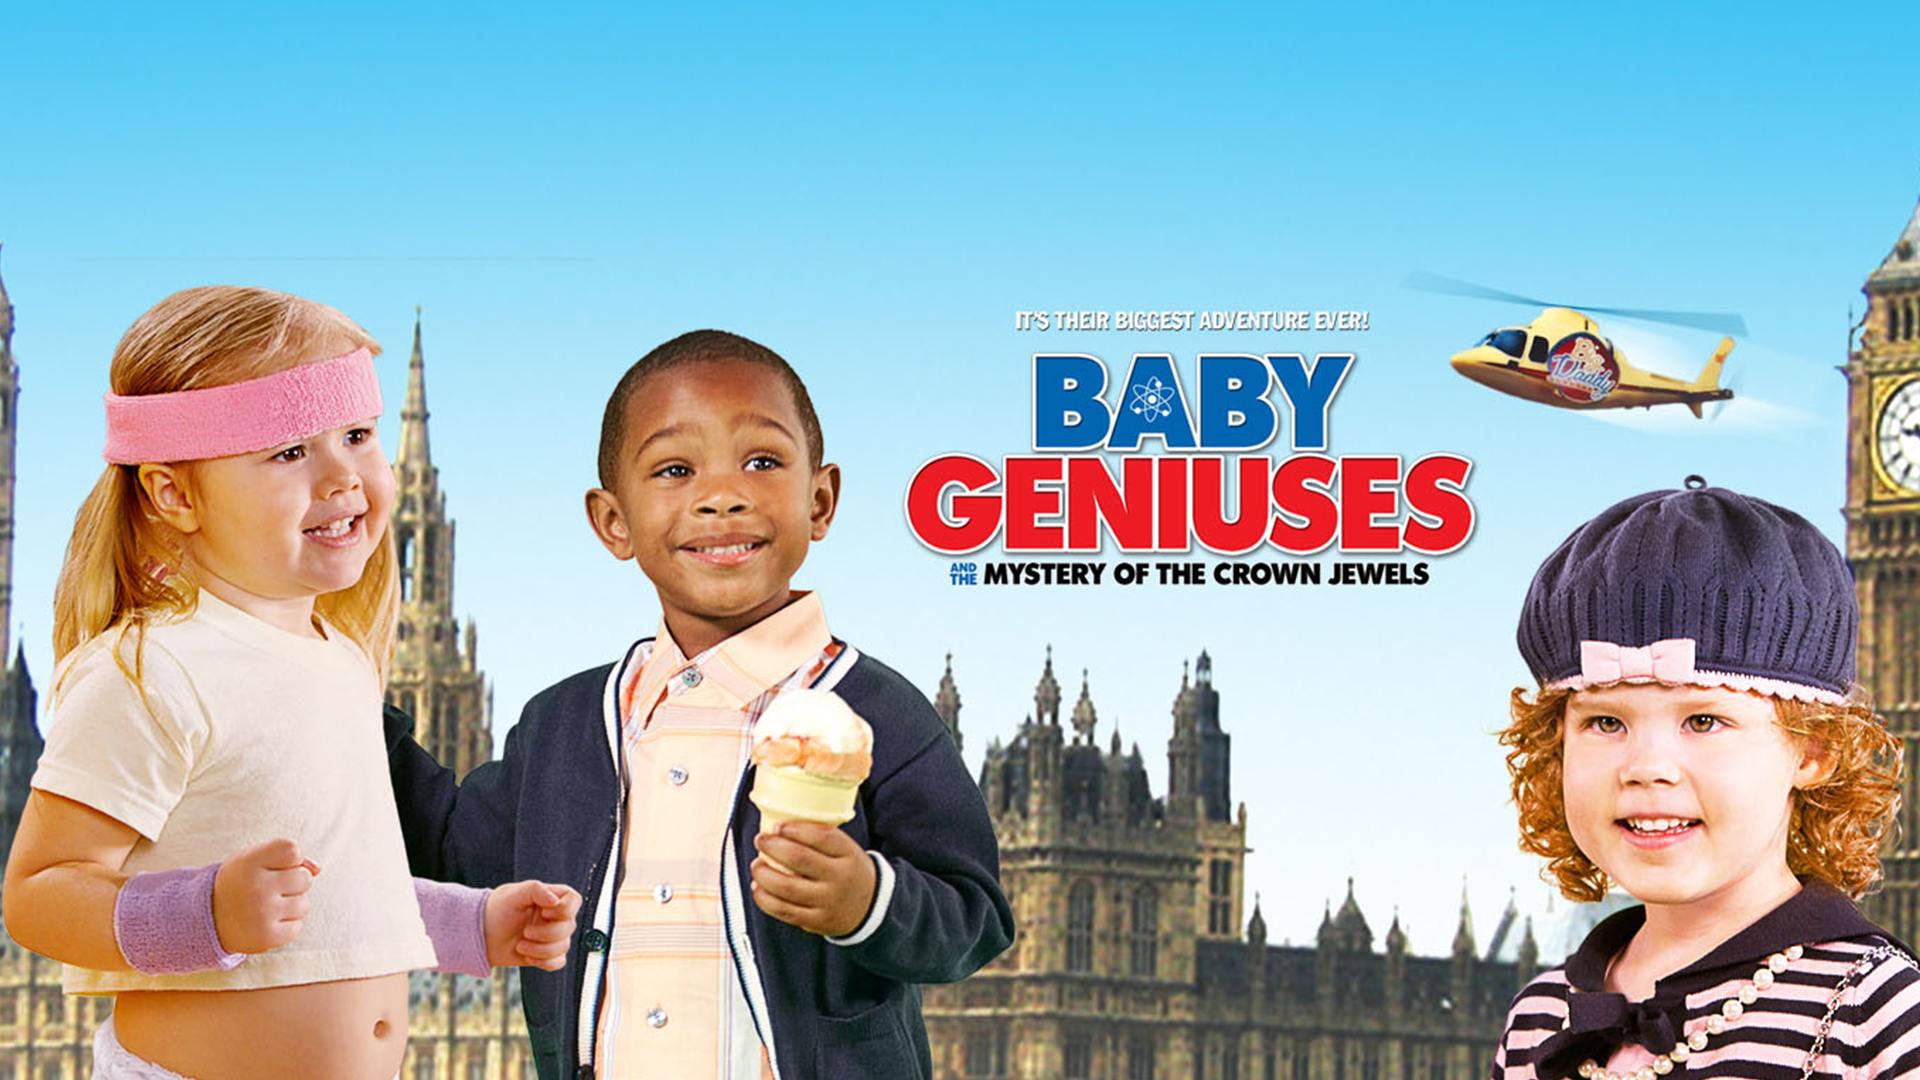 Baby Geniuses and the Mystery of the Crown Jewels